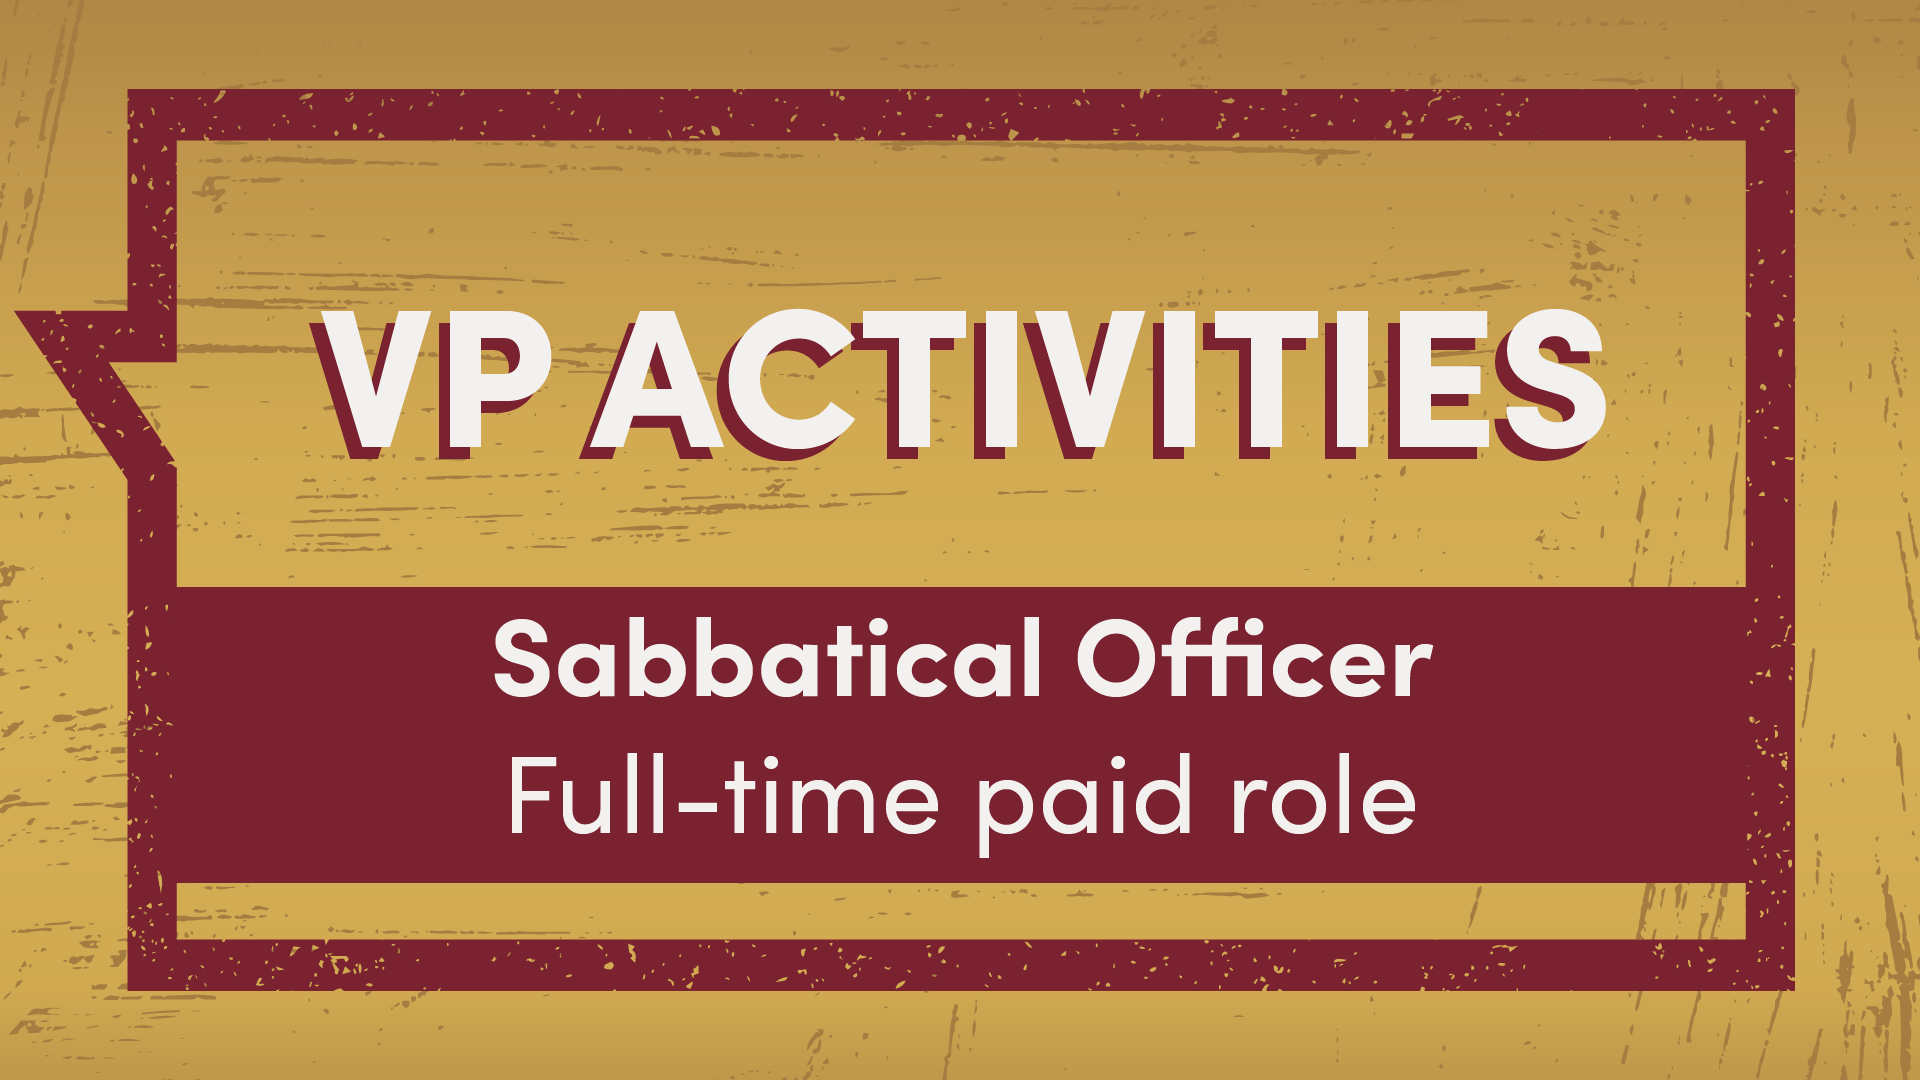 VP Activities Sabbatical Officer full-time paid role